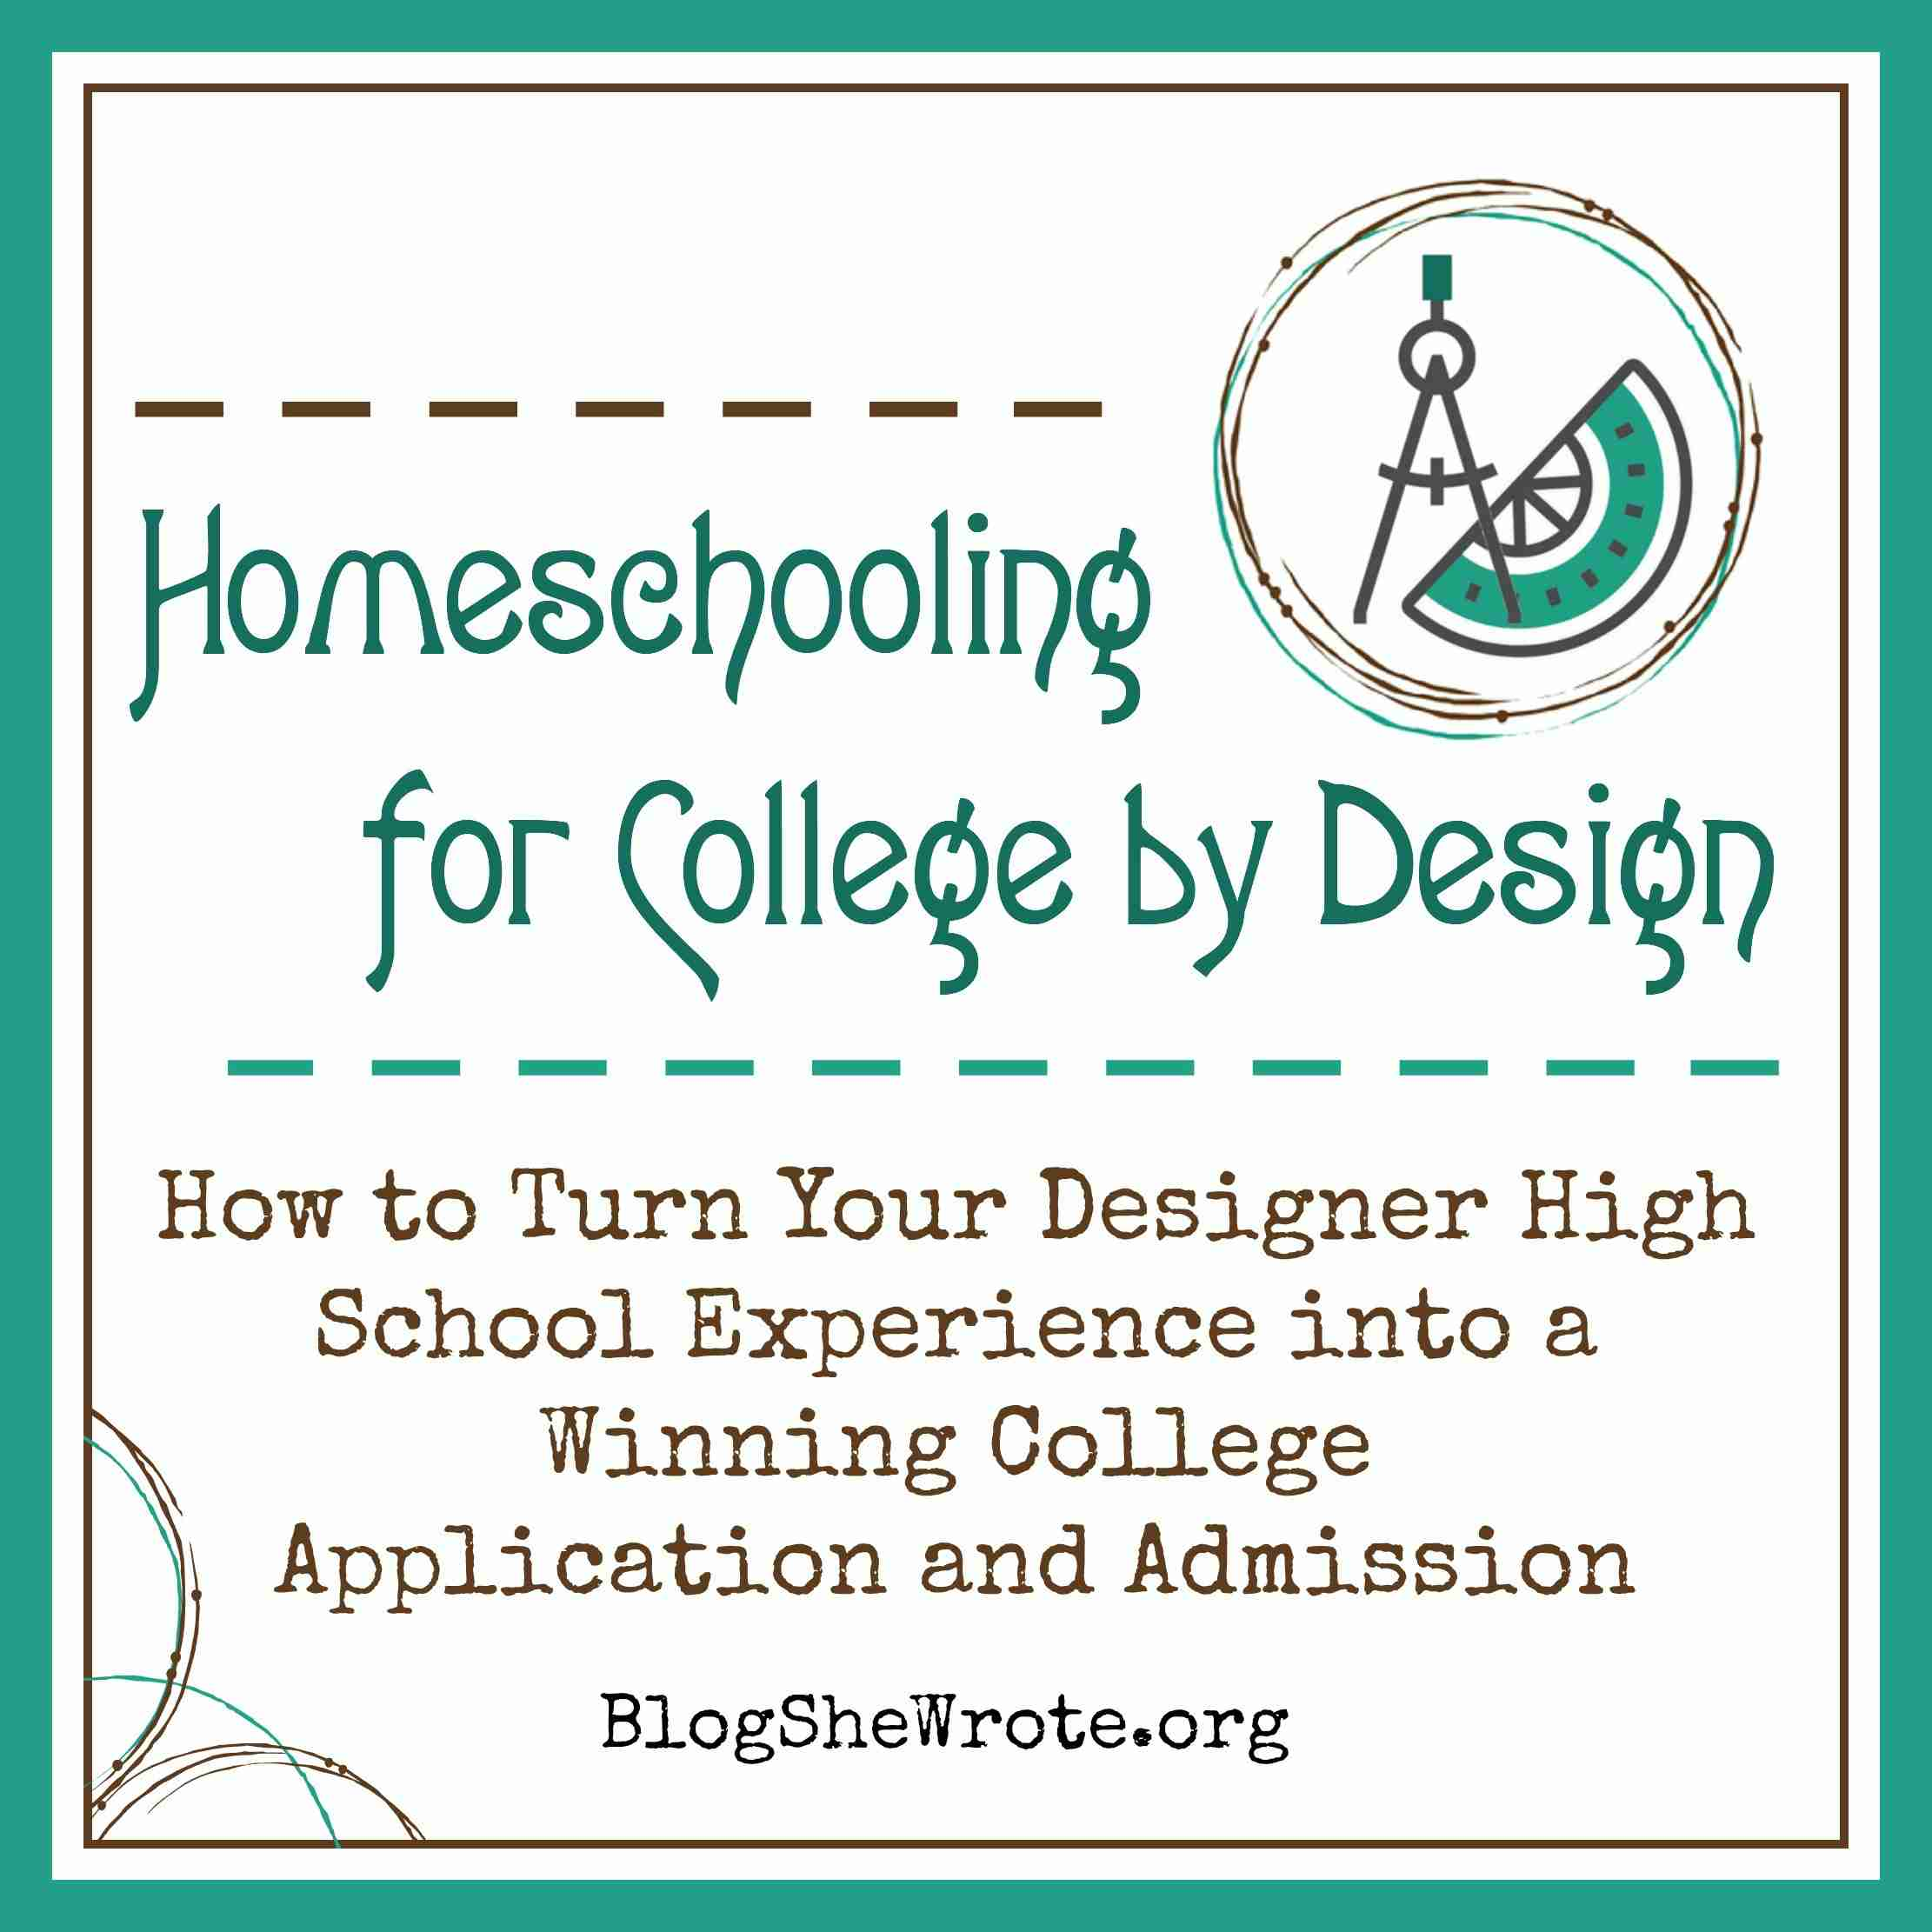 Homeschooling for College by Design